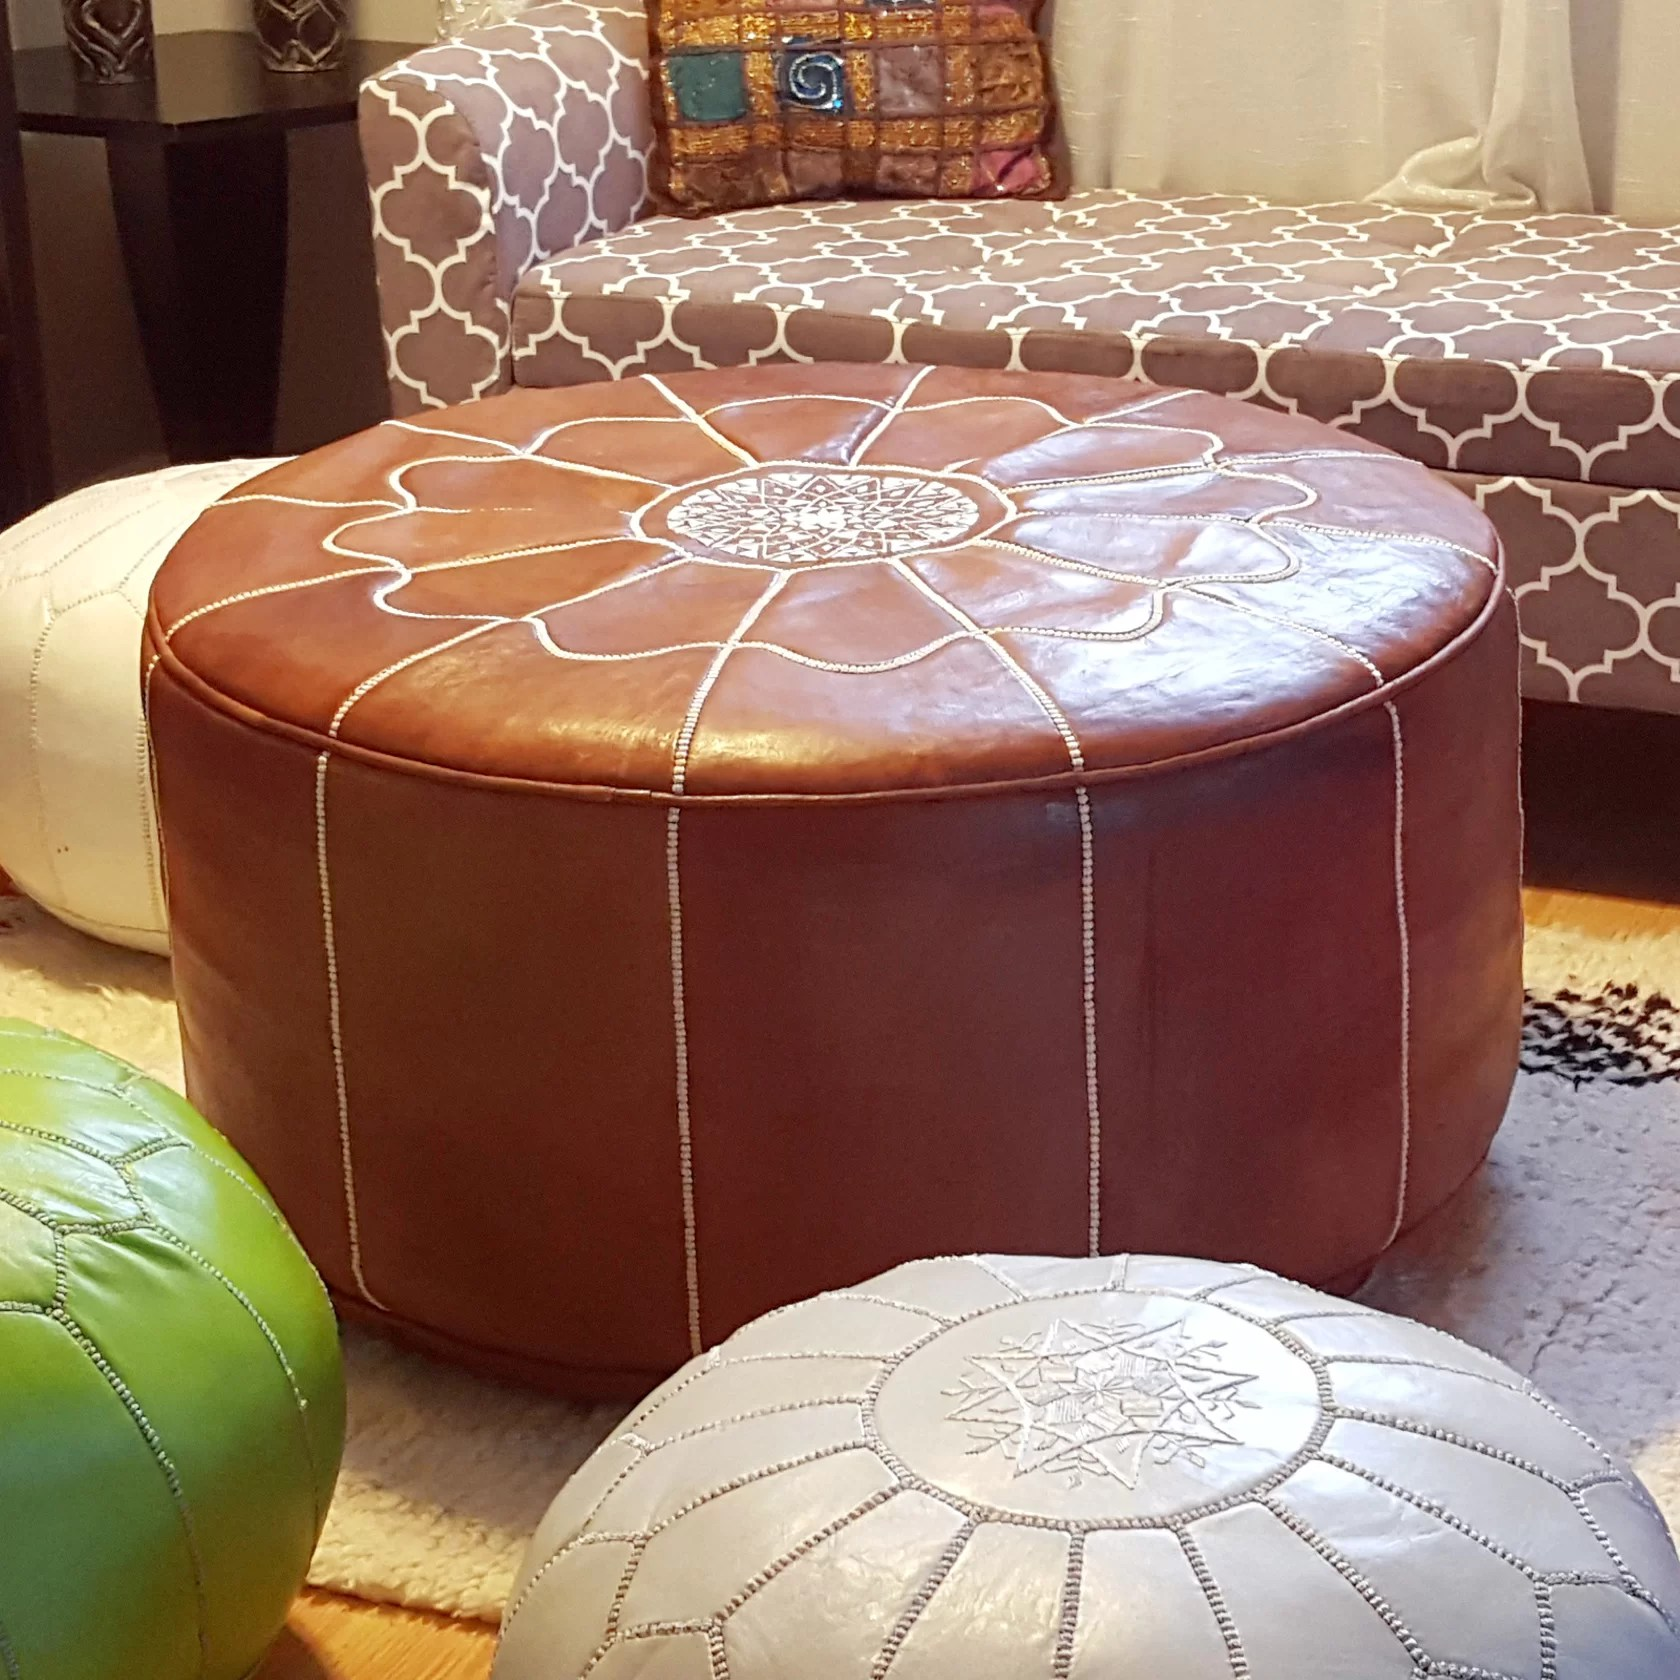 Moroccan Leather Pouf Design Sit Down Pinterest Leather Giant Moroccan Leather Pouf